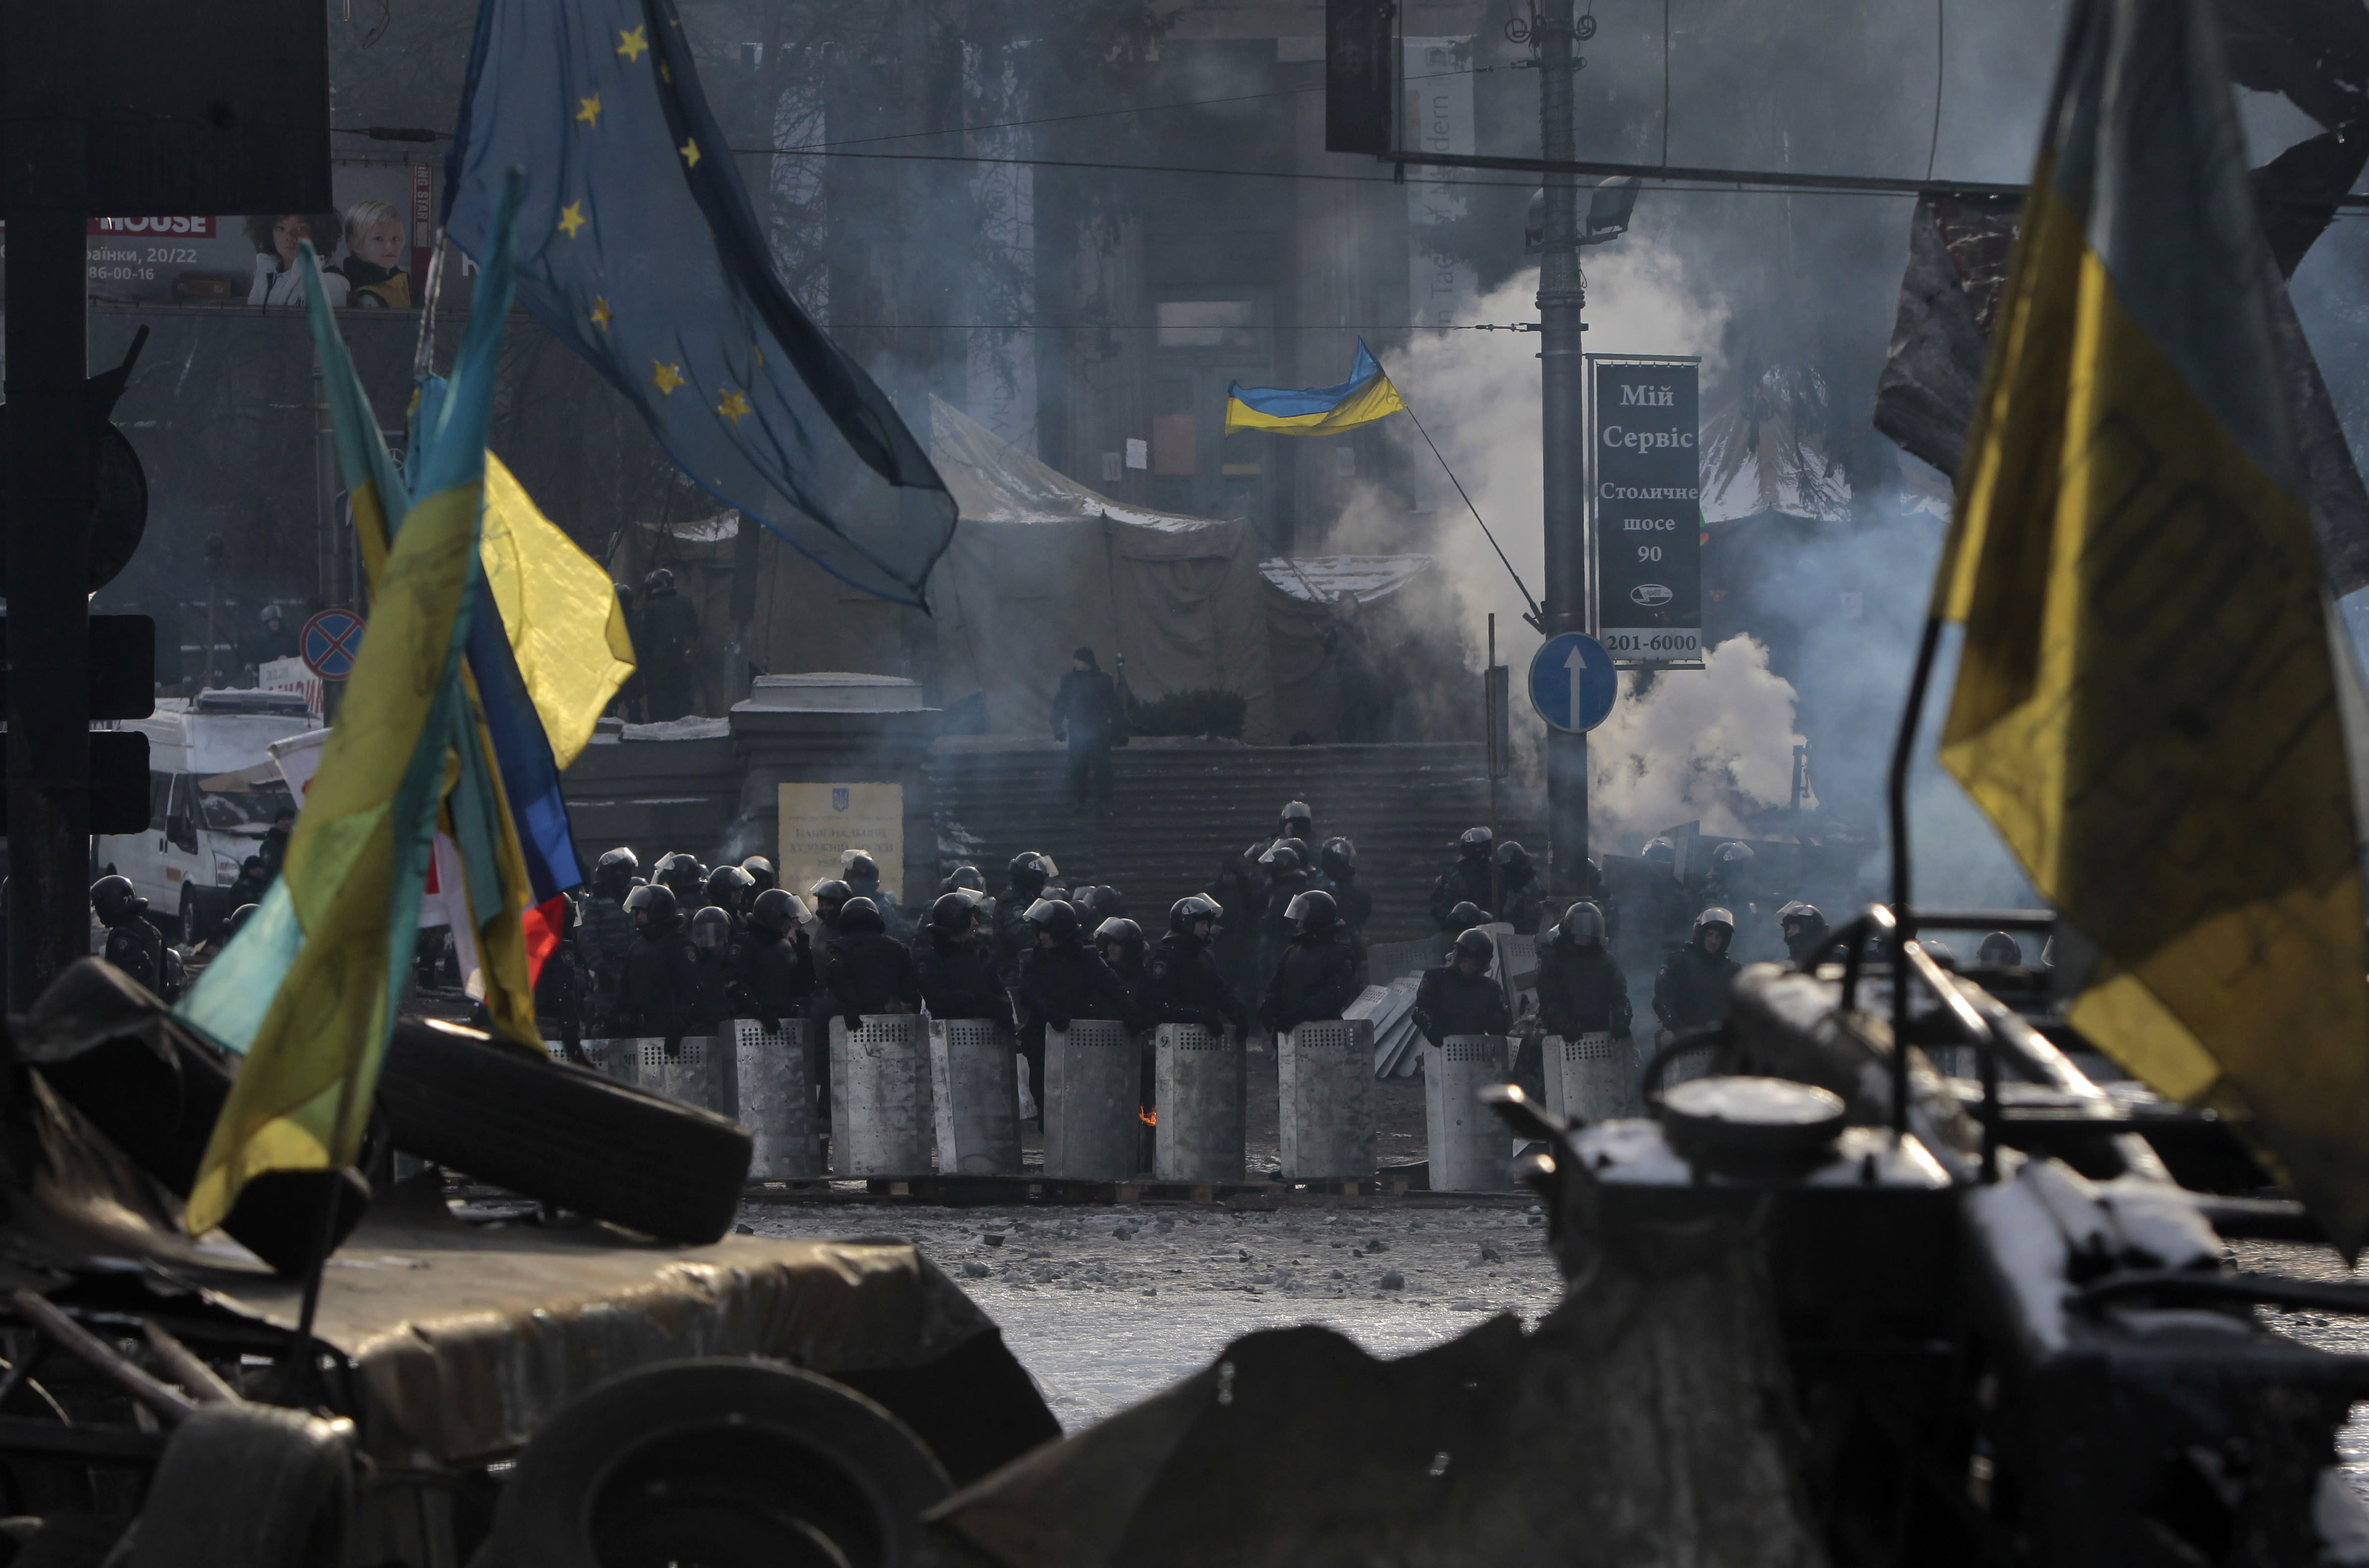 FILE - In this Feb. 1, 2014 file photo, riot police line up as seen through protesters' barricades in central Kiev, Ukraine. Russian border guards opened fire on three Ukrainian vessels late Sunday, Nov. 25, 2018 in the Kerch Strait near the Russia-occupied Crimean peninsula, raising the prospect of a full-scale military confrontation between the two neighbors. The incident comes on the back of a four-and-a-half year long proxy conflict in eastern Ukraine. (AP Photo/Sergei Chuzavkov, File)